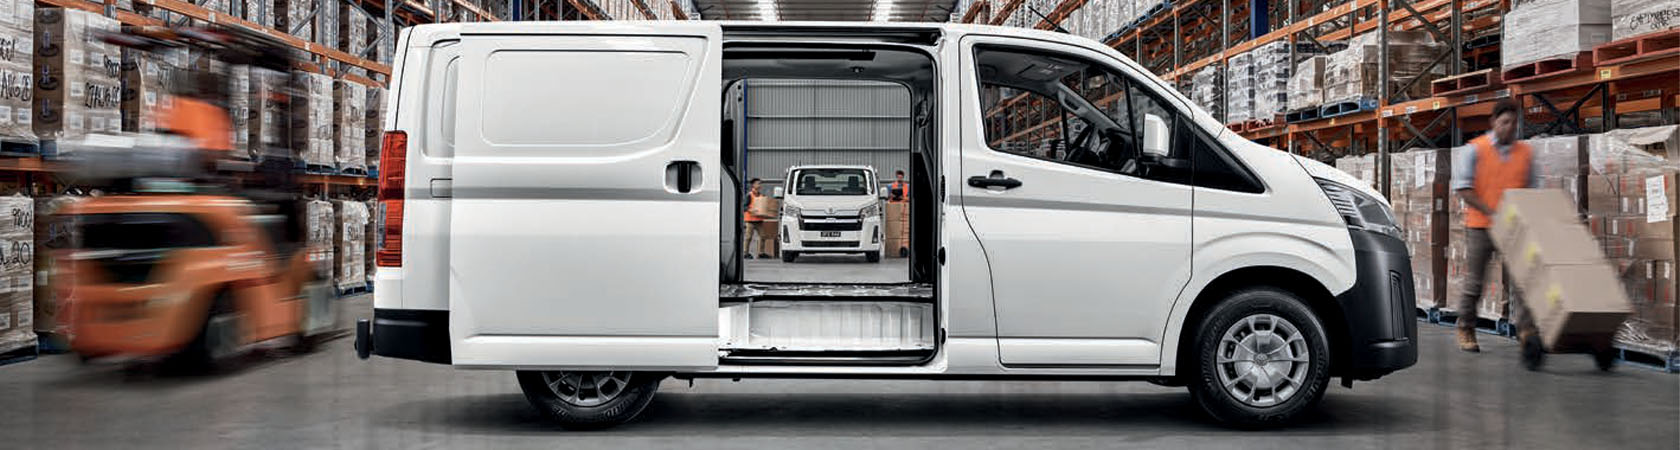 Warrnambool Toyota Granvia